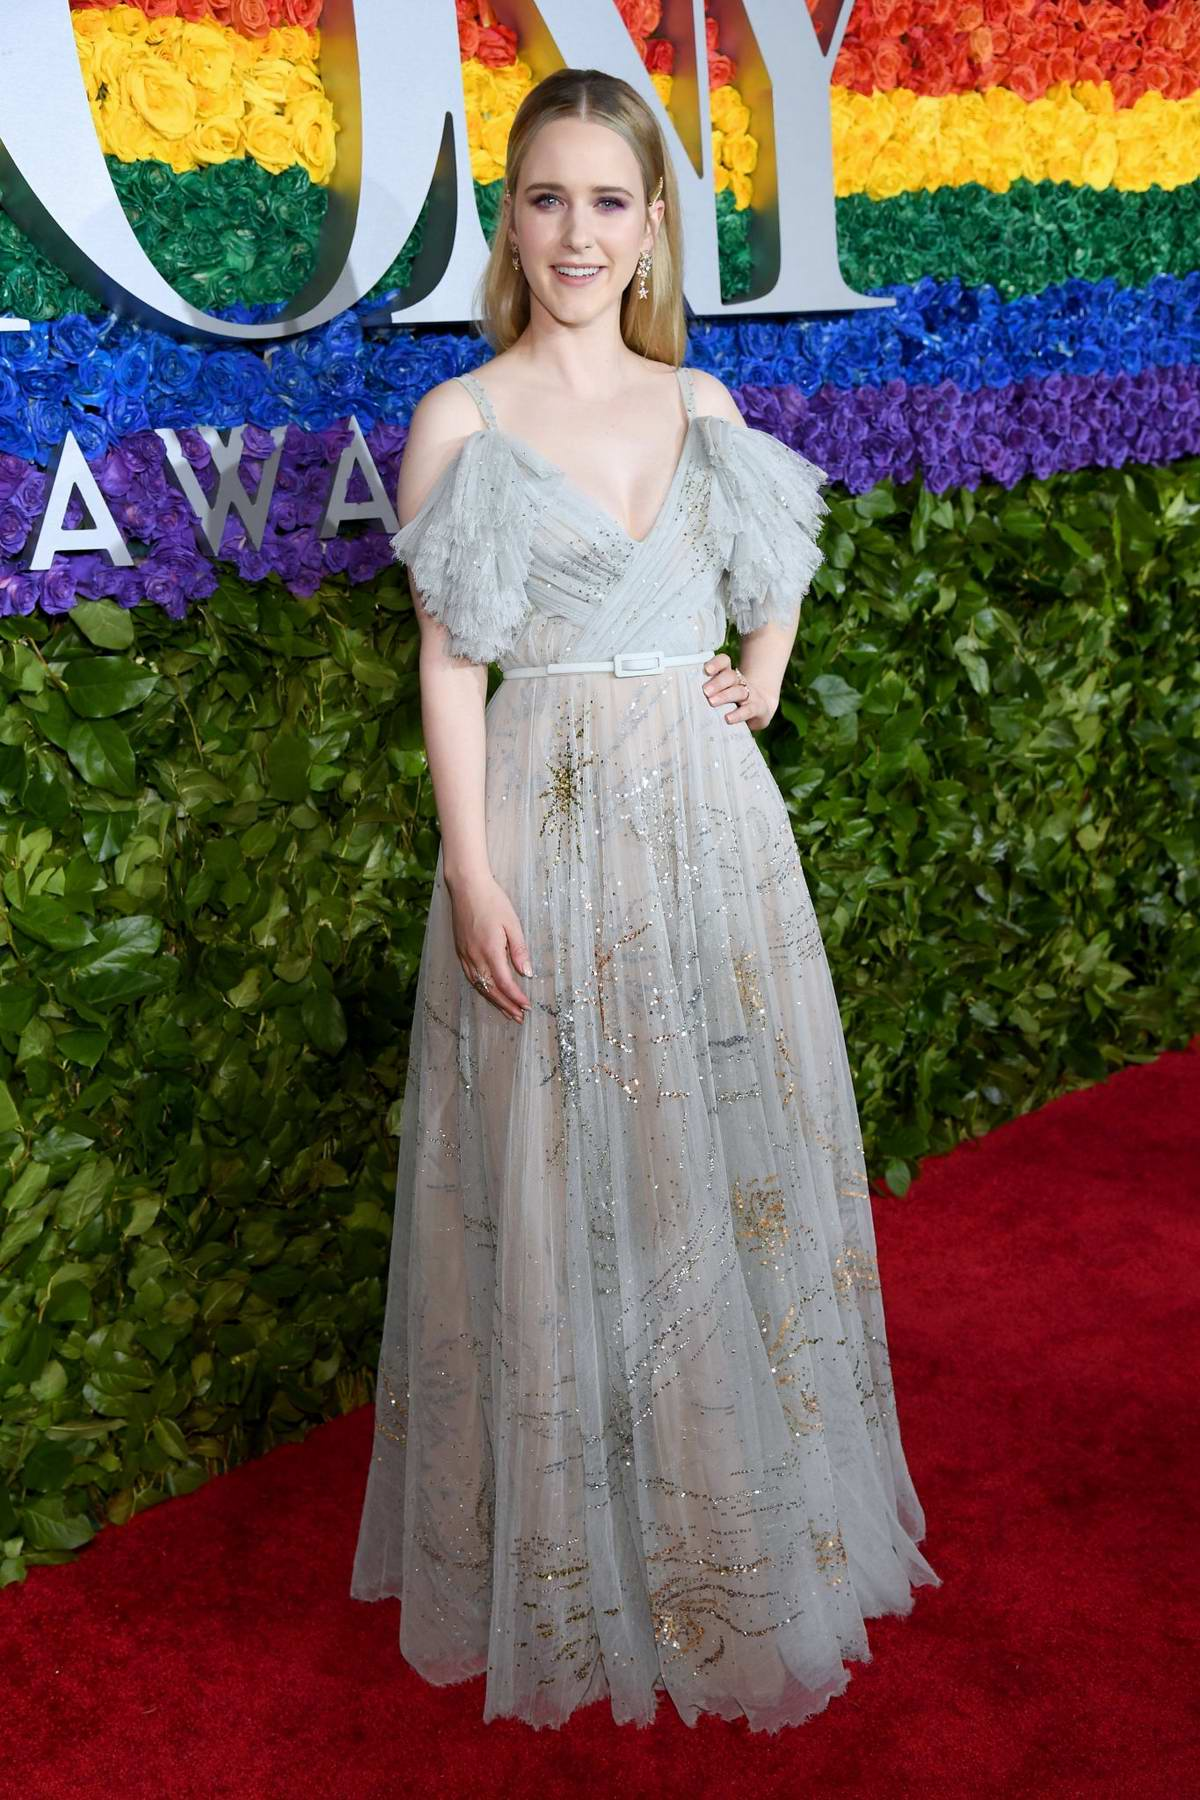 Rachel Brosnahan attends the 73rd annual Tony Awards at Radio City Music Hall in New York City